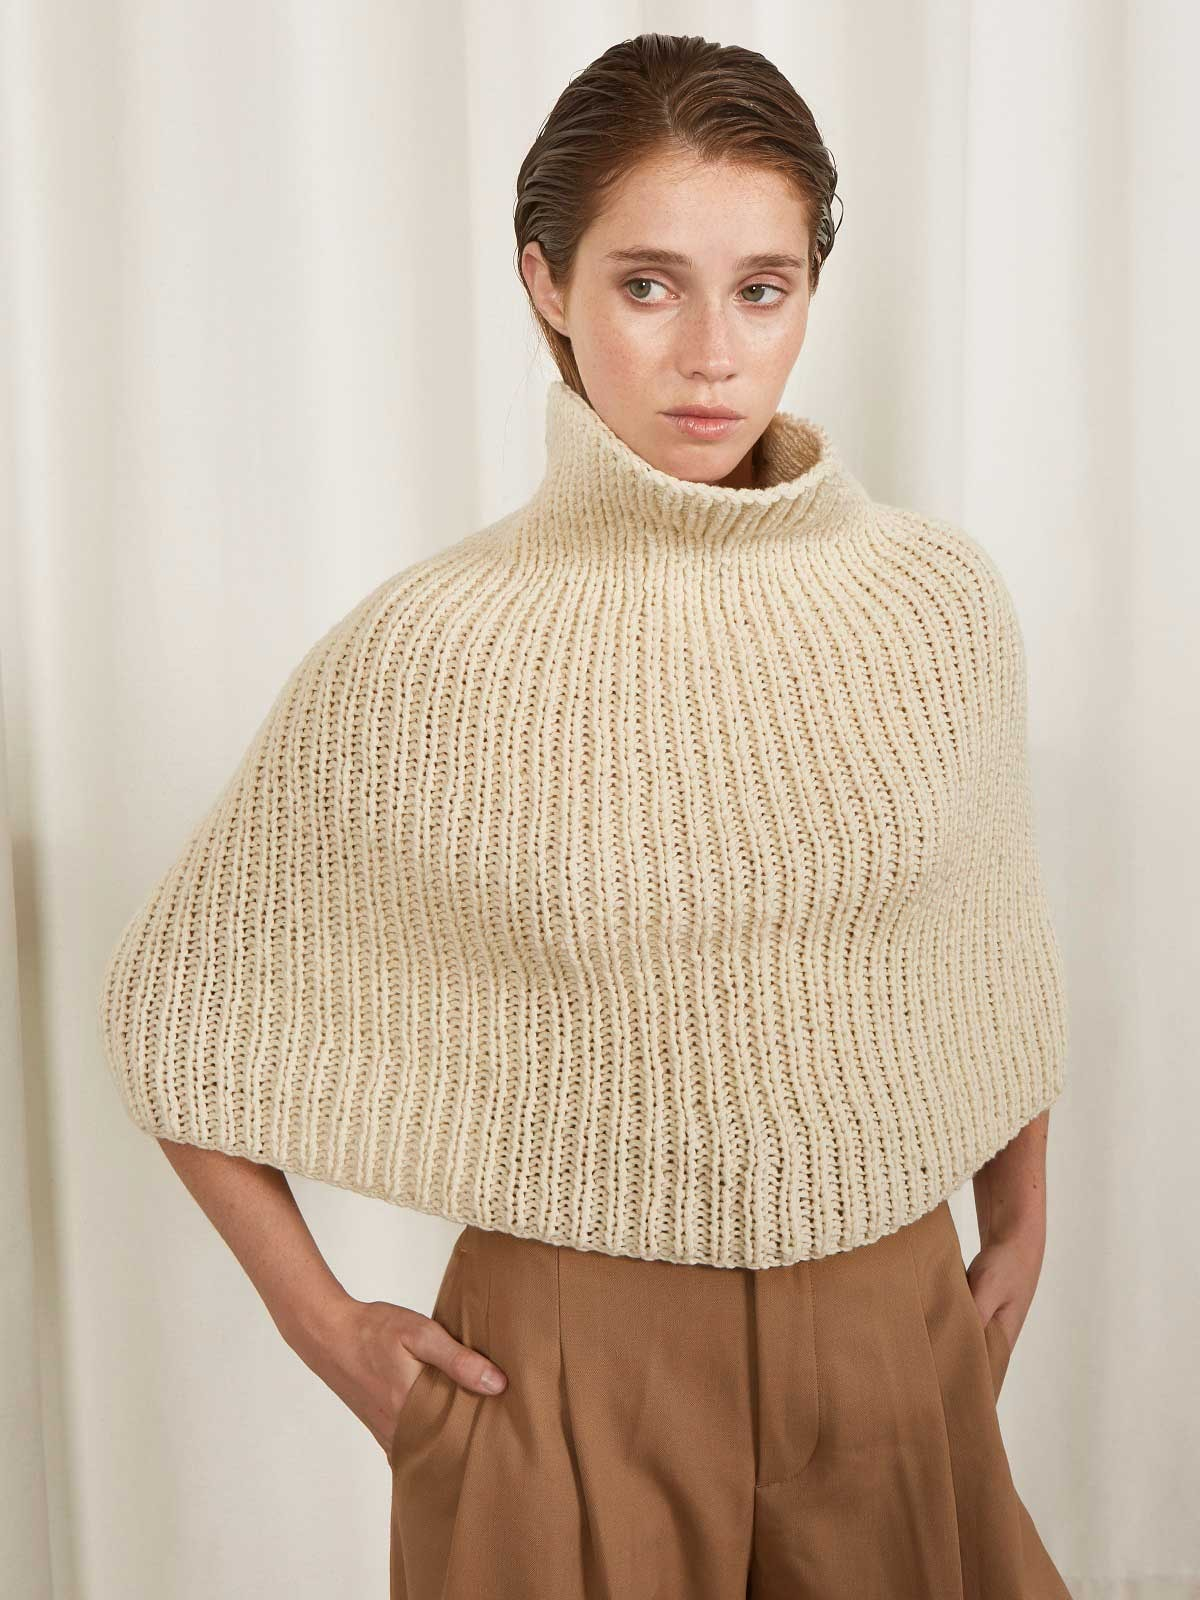 Meet Maydi, the knitwear brand using local Argentinian fibres